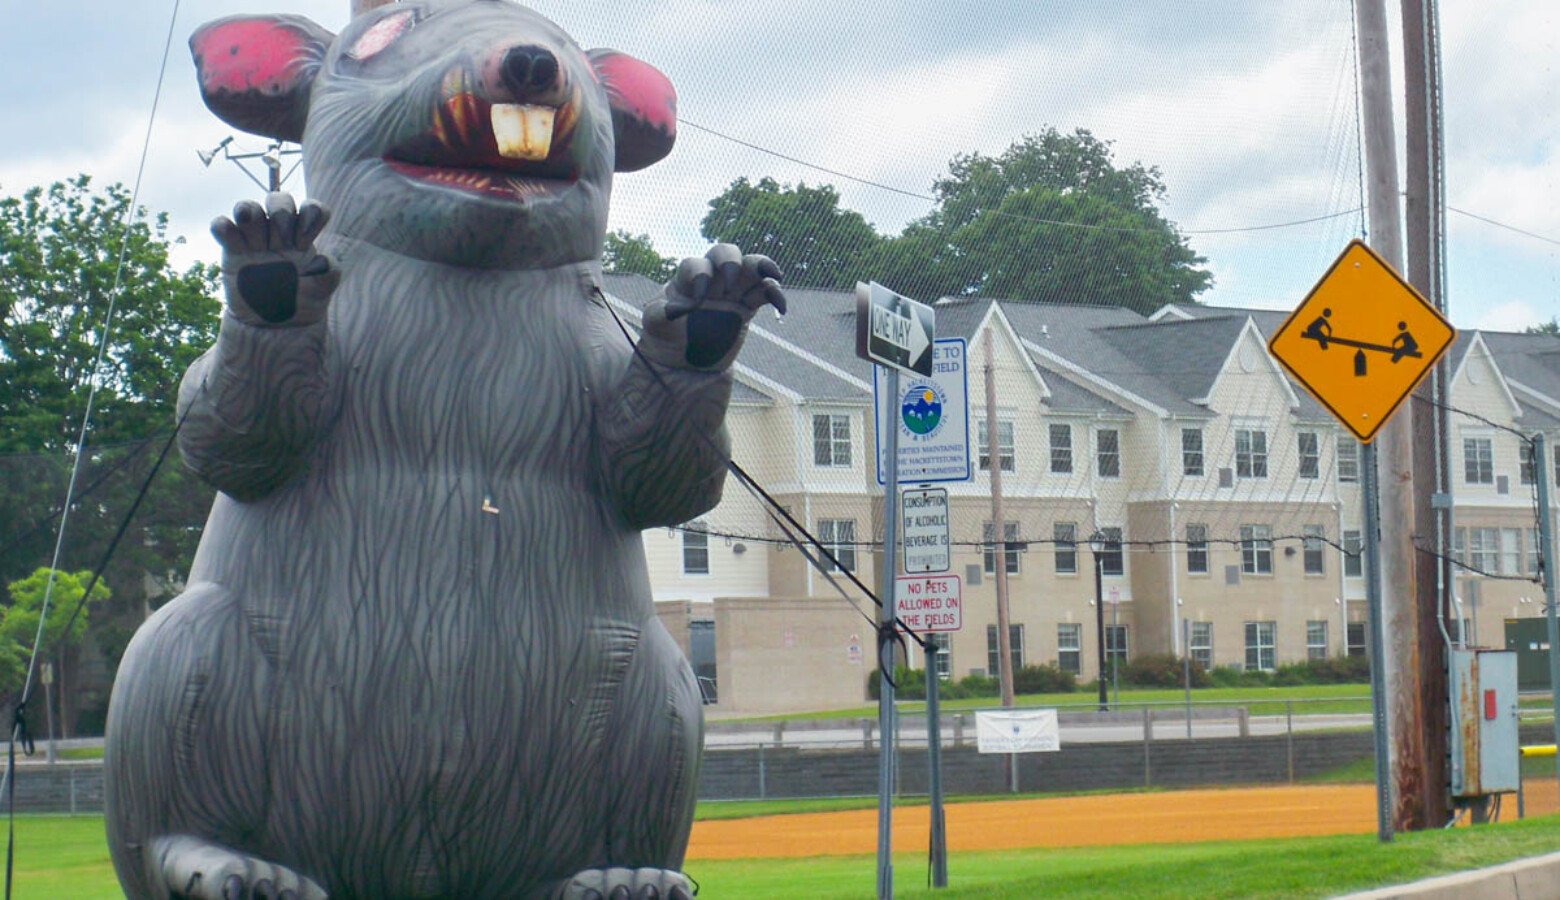 An inflatable rat in Hackettstown, New Jersey similar to the one used in an Elkhart demonstration. (Erik Anderson/Wikimedia Commons)